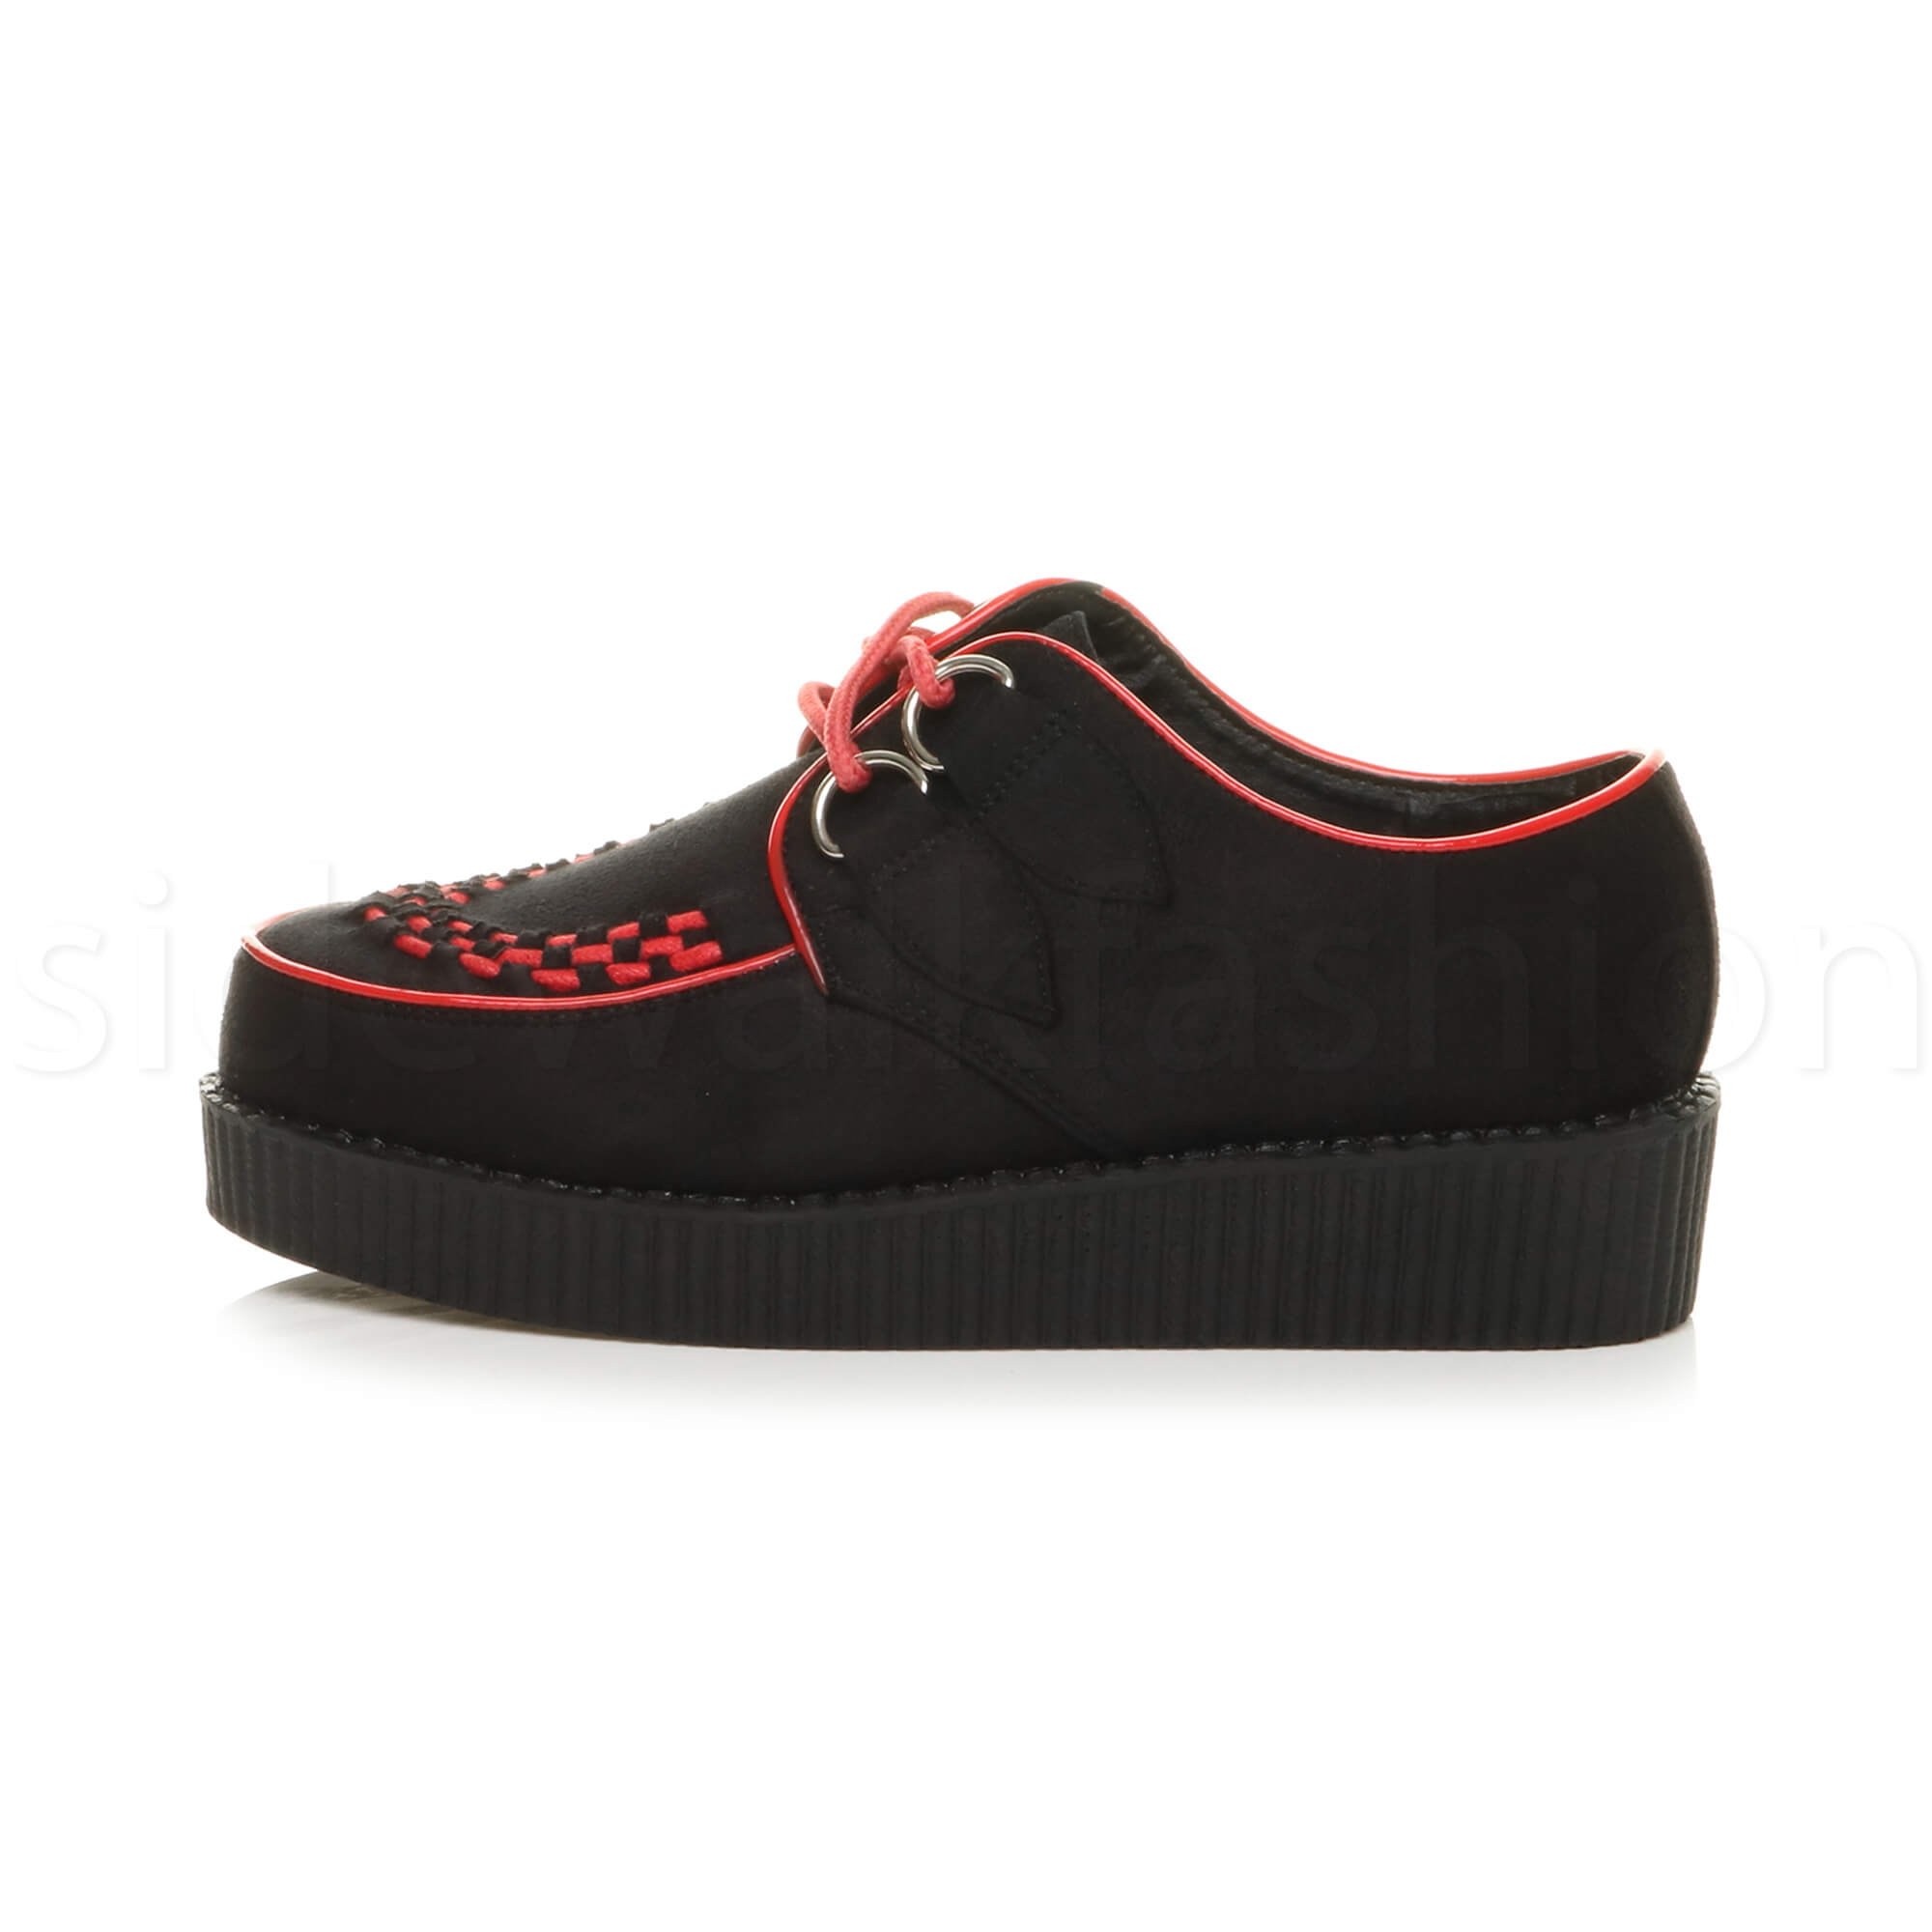 Womens-ladies-flat-platform-wedge-lace-up-goth-punk-creepers-shoes-boots-size miniatura 8